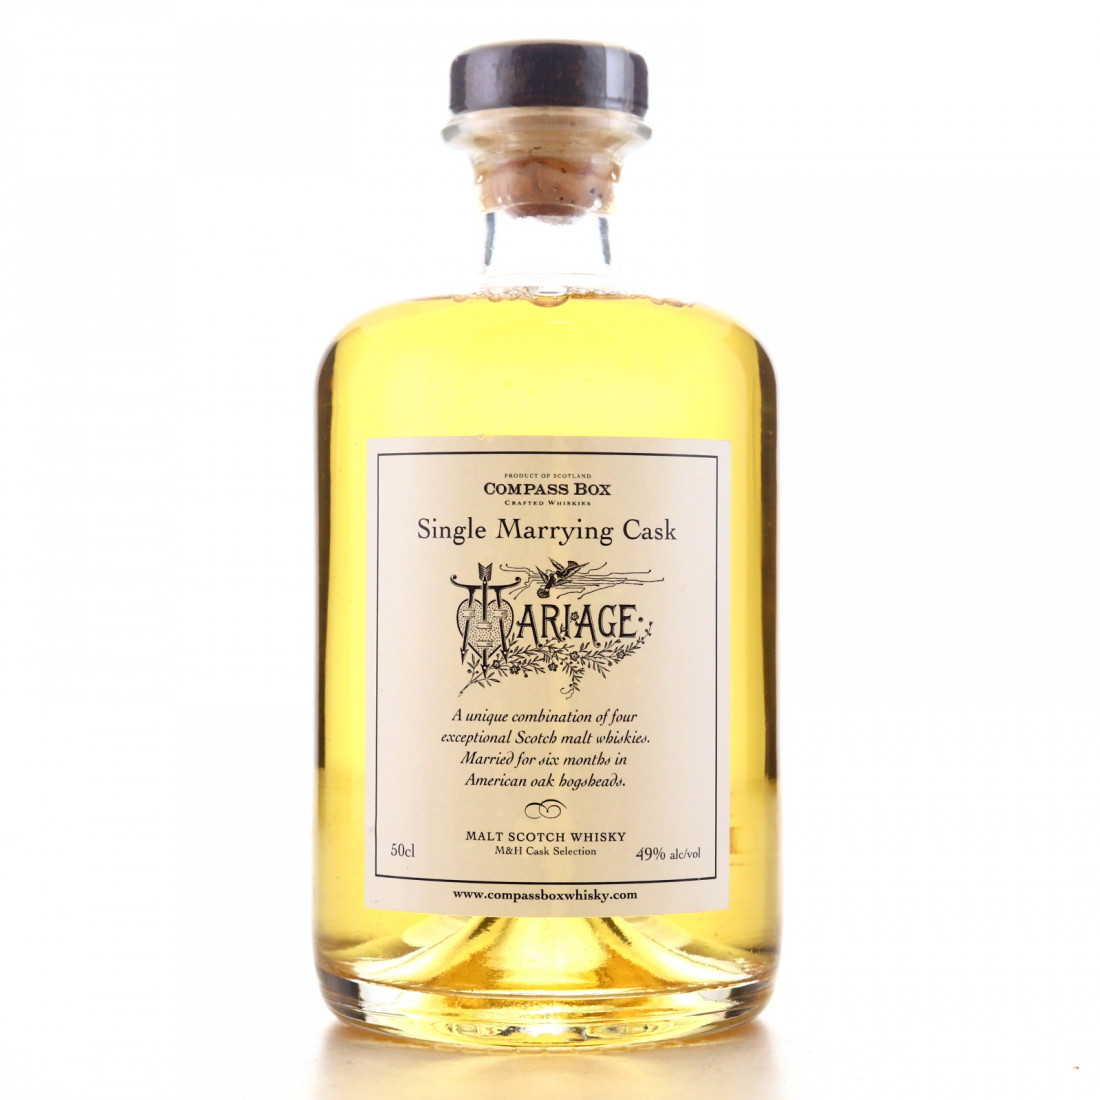 Compass Box Single Marrying Cask 50cl / LMDW